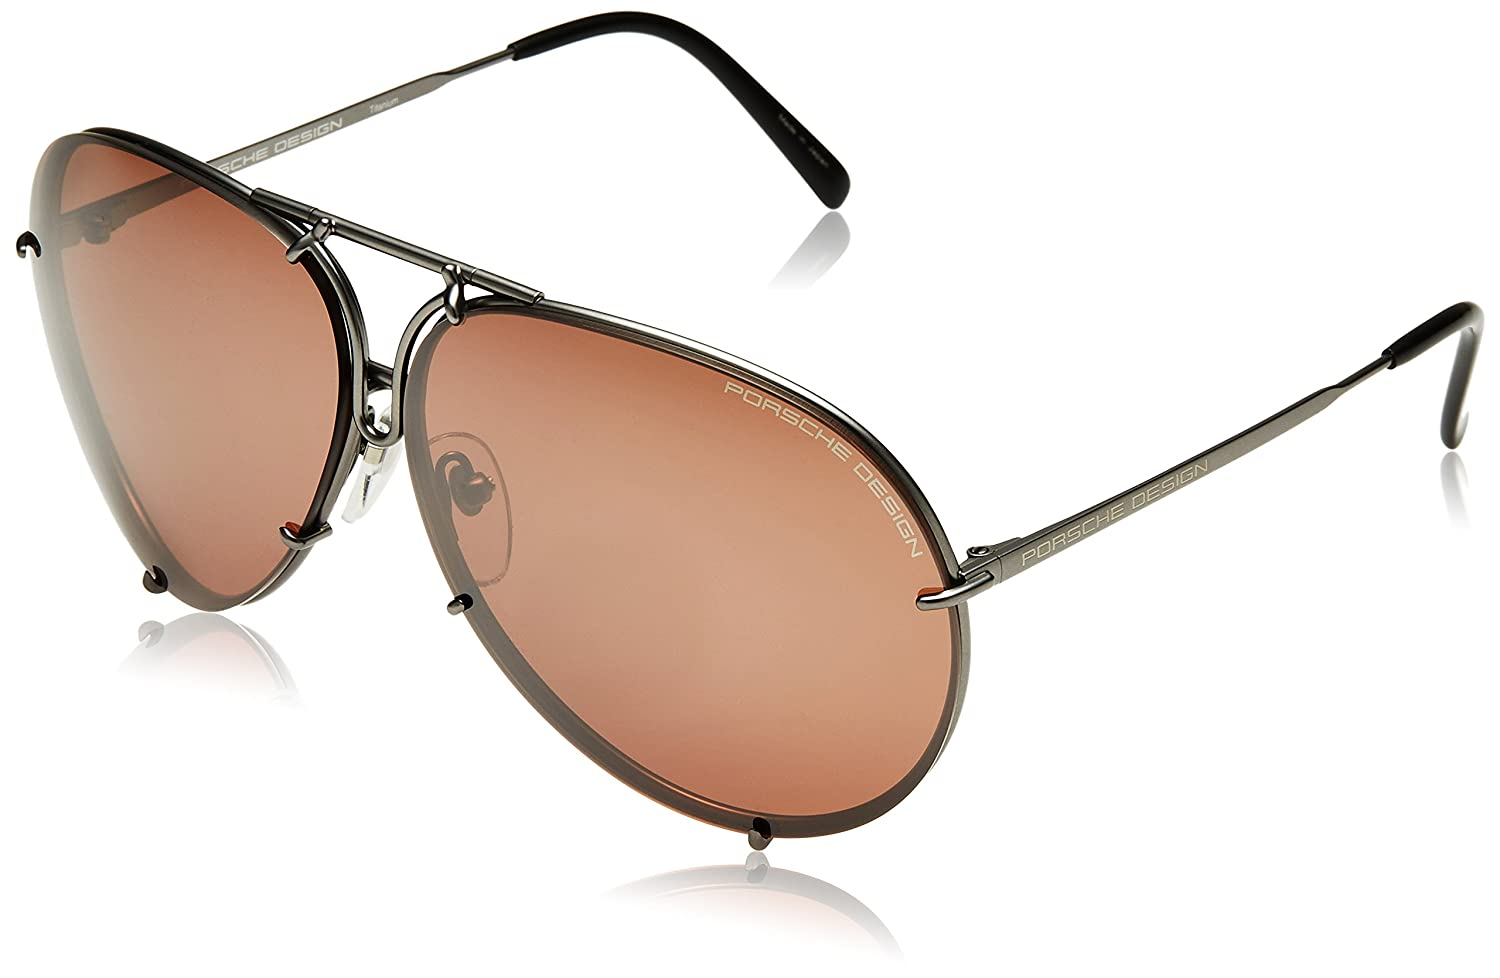 2a9cf189021 Porsche Design Sonnenbrille (P8478)  Amazon.co.uk  Clothing